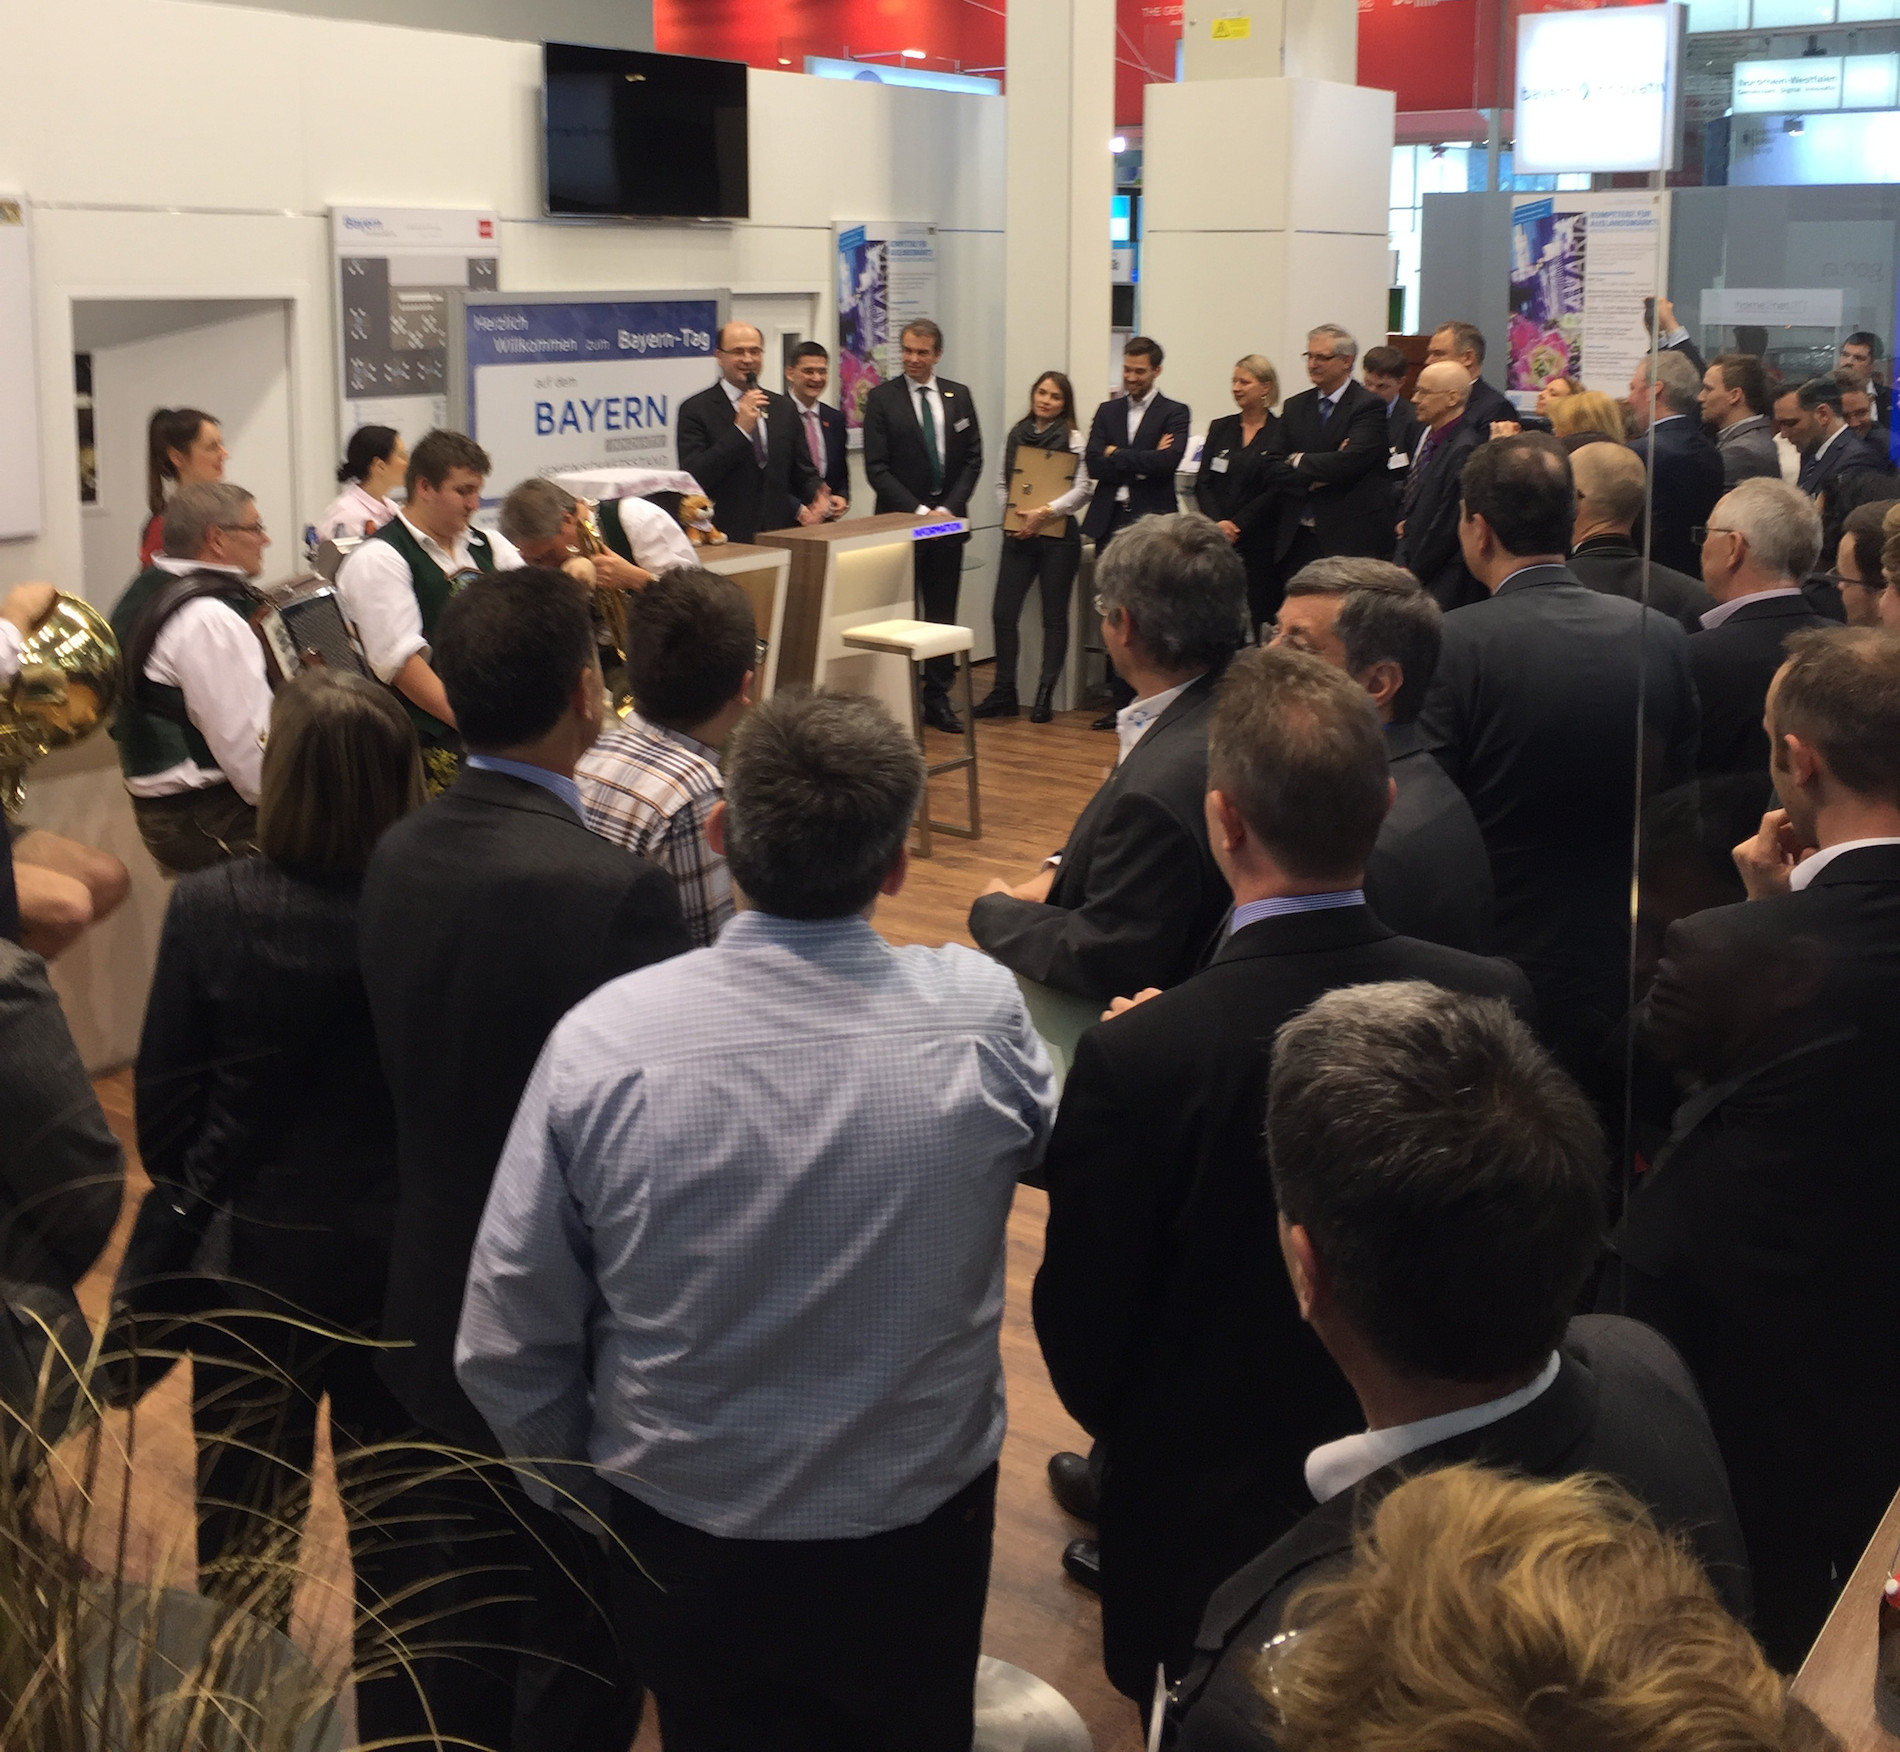 Standparty bei Bayern innovativ